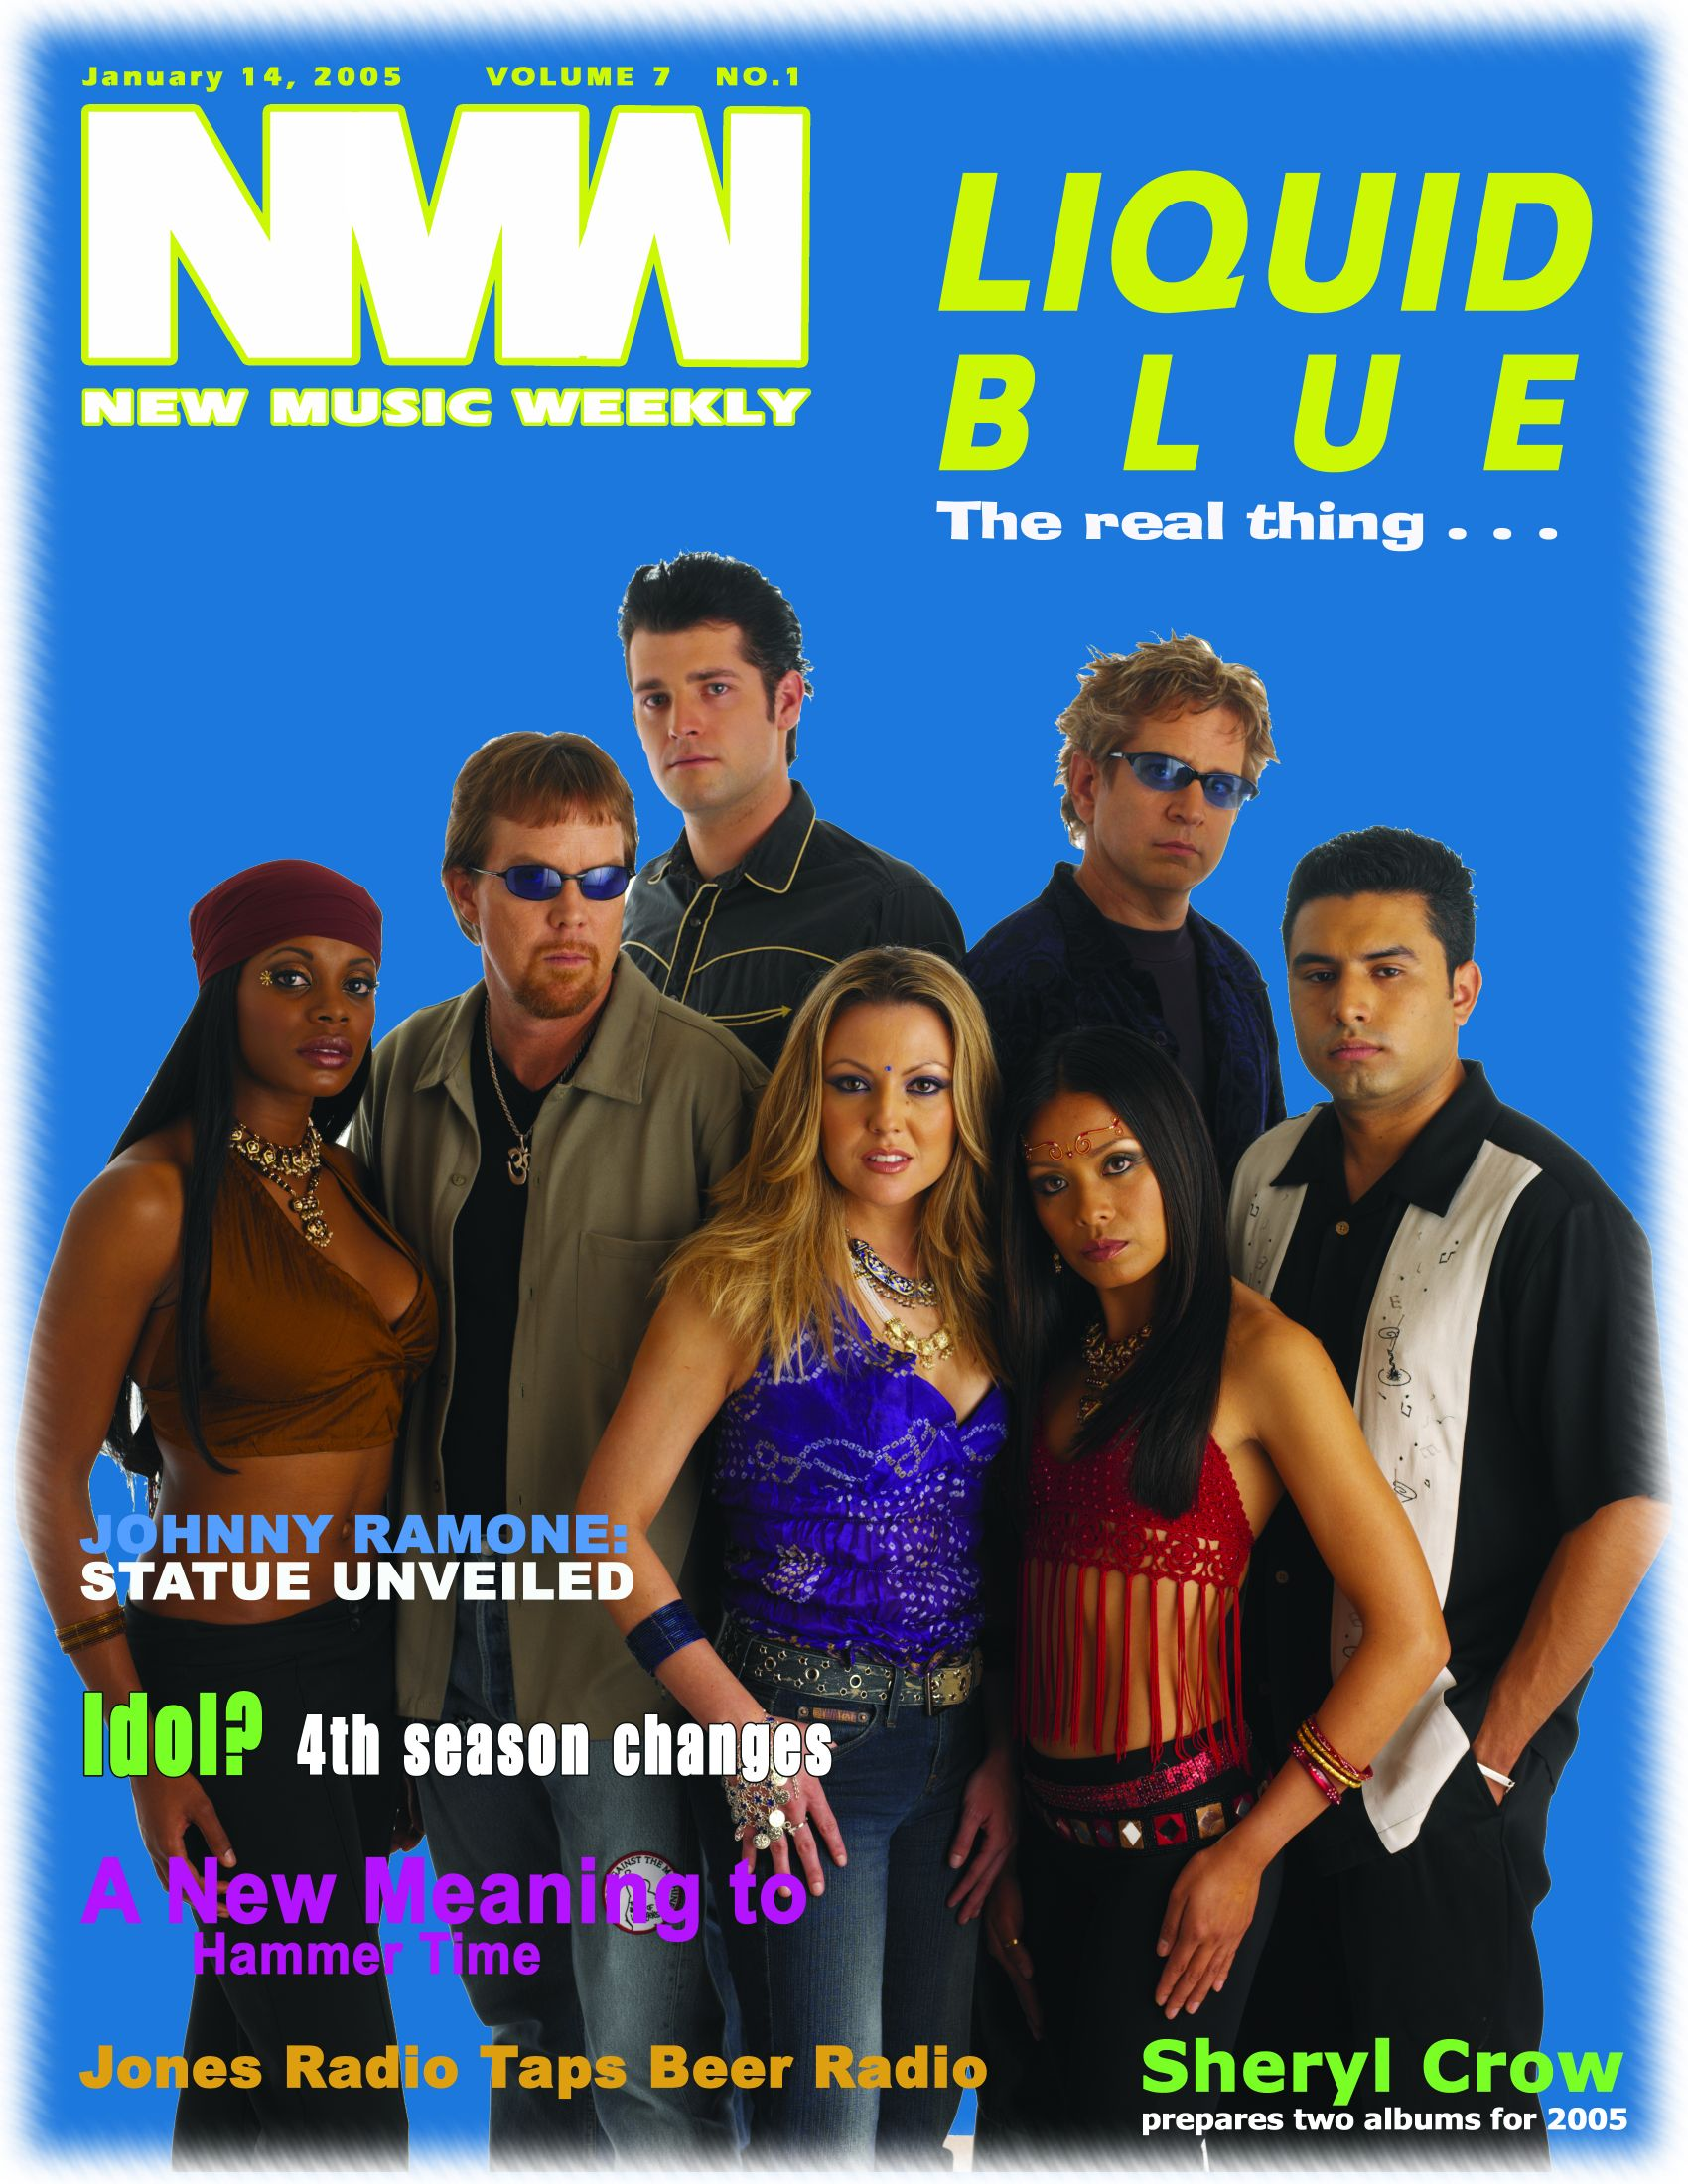 New Music Weekly Cover Jan 2005